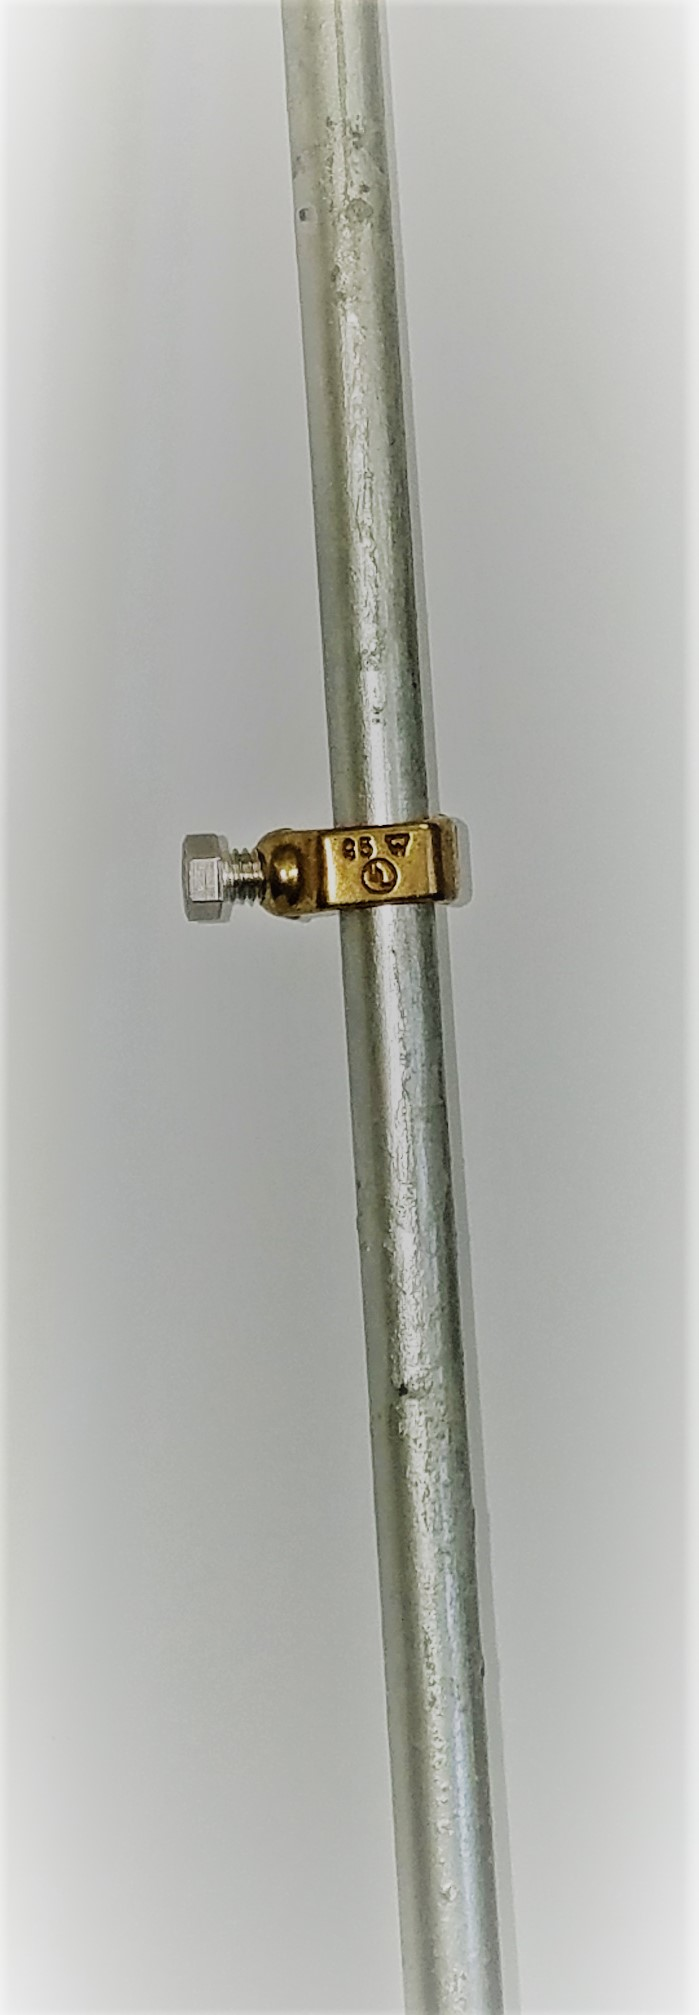 0094 - 4' Ground Rod